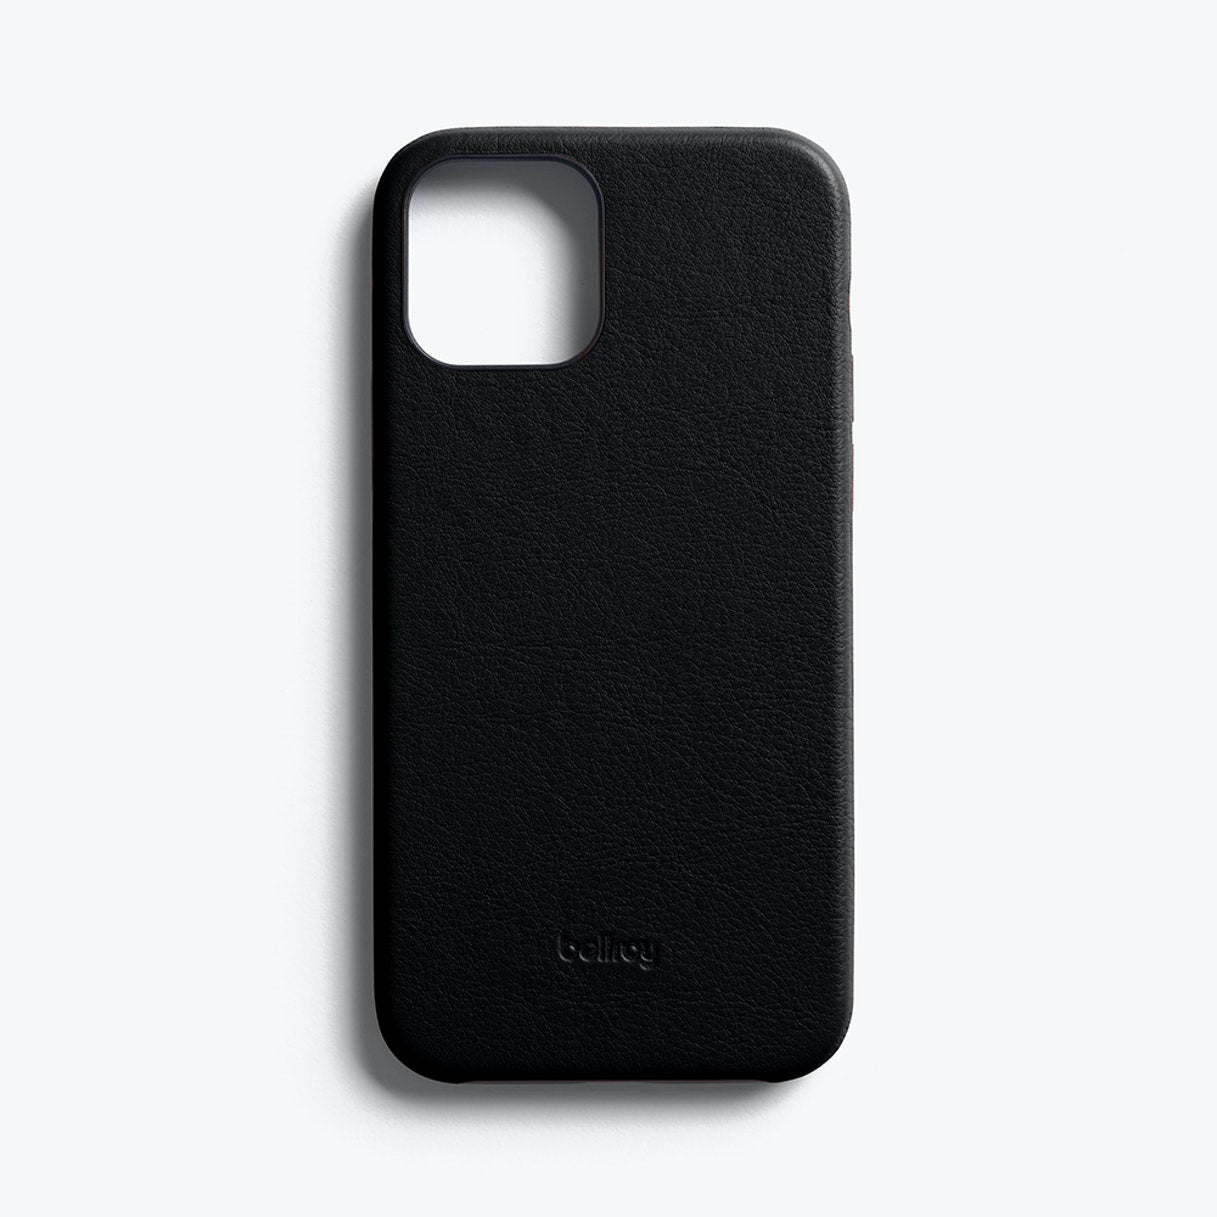 Bellroy Slim Genuine Leather Case For iPhone iPhone 12 / 12 Pro - BLACK